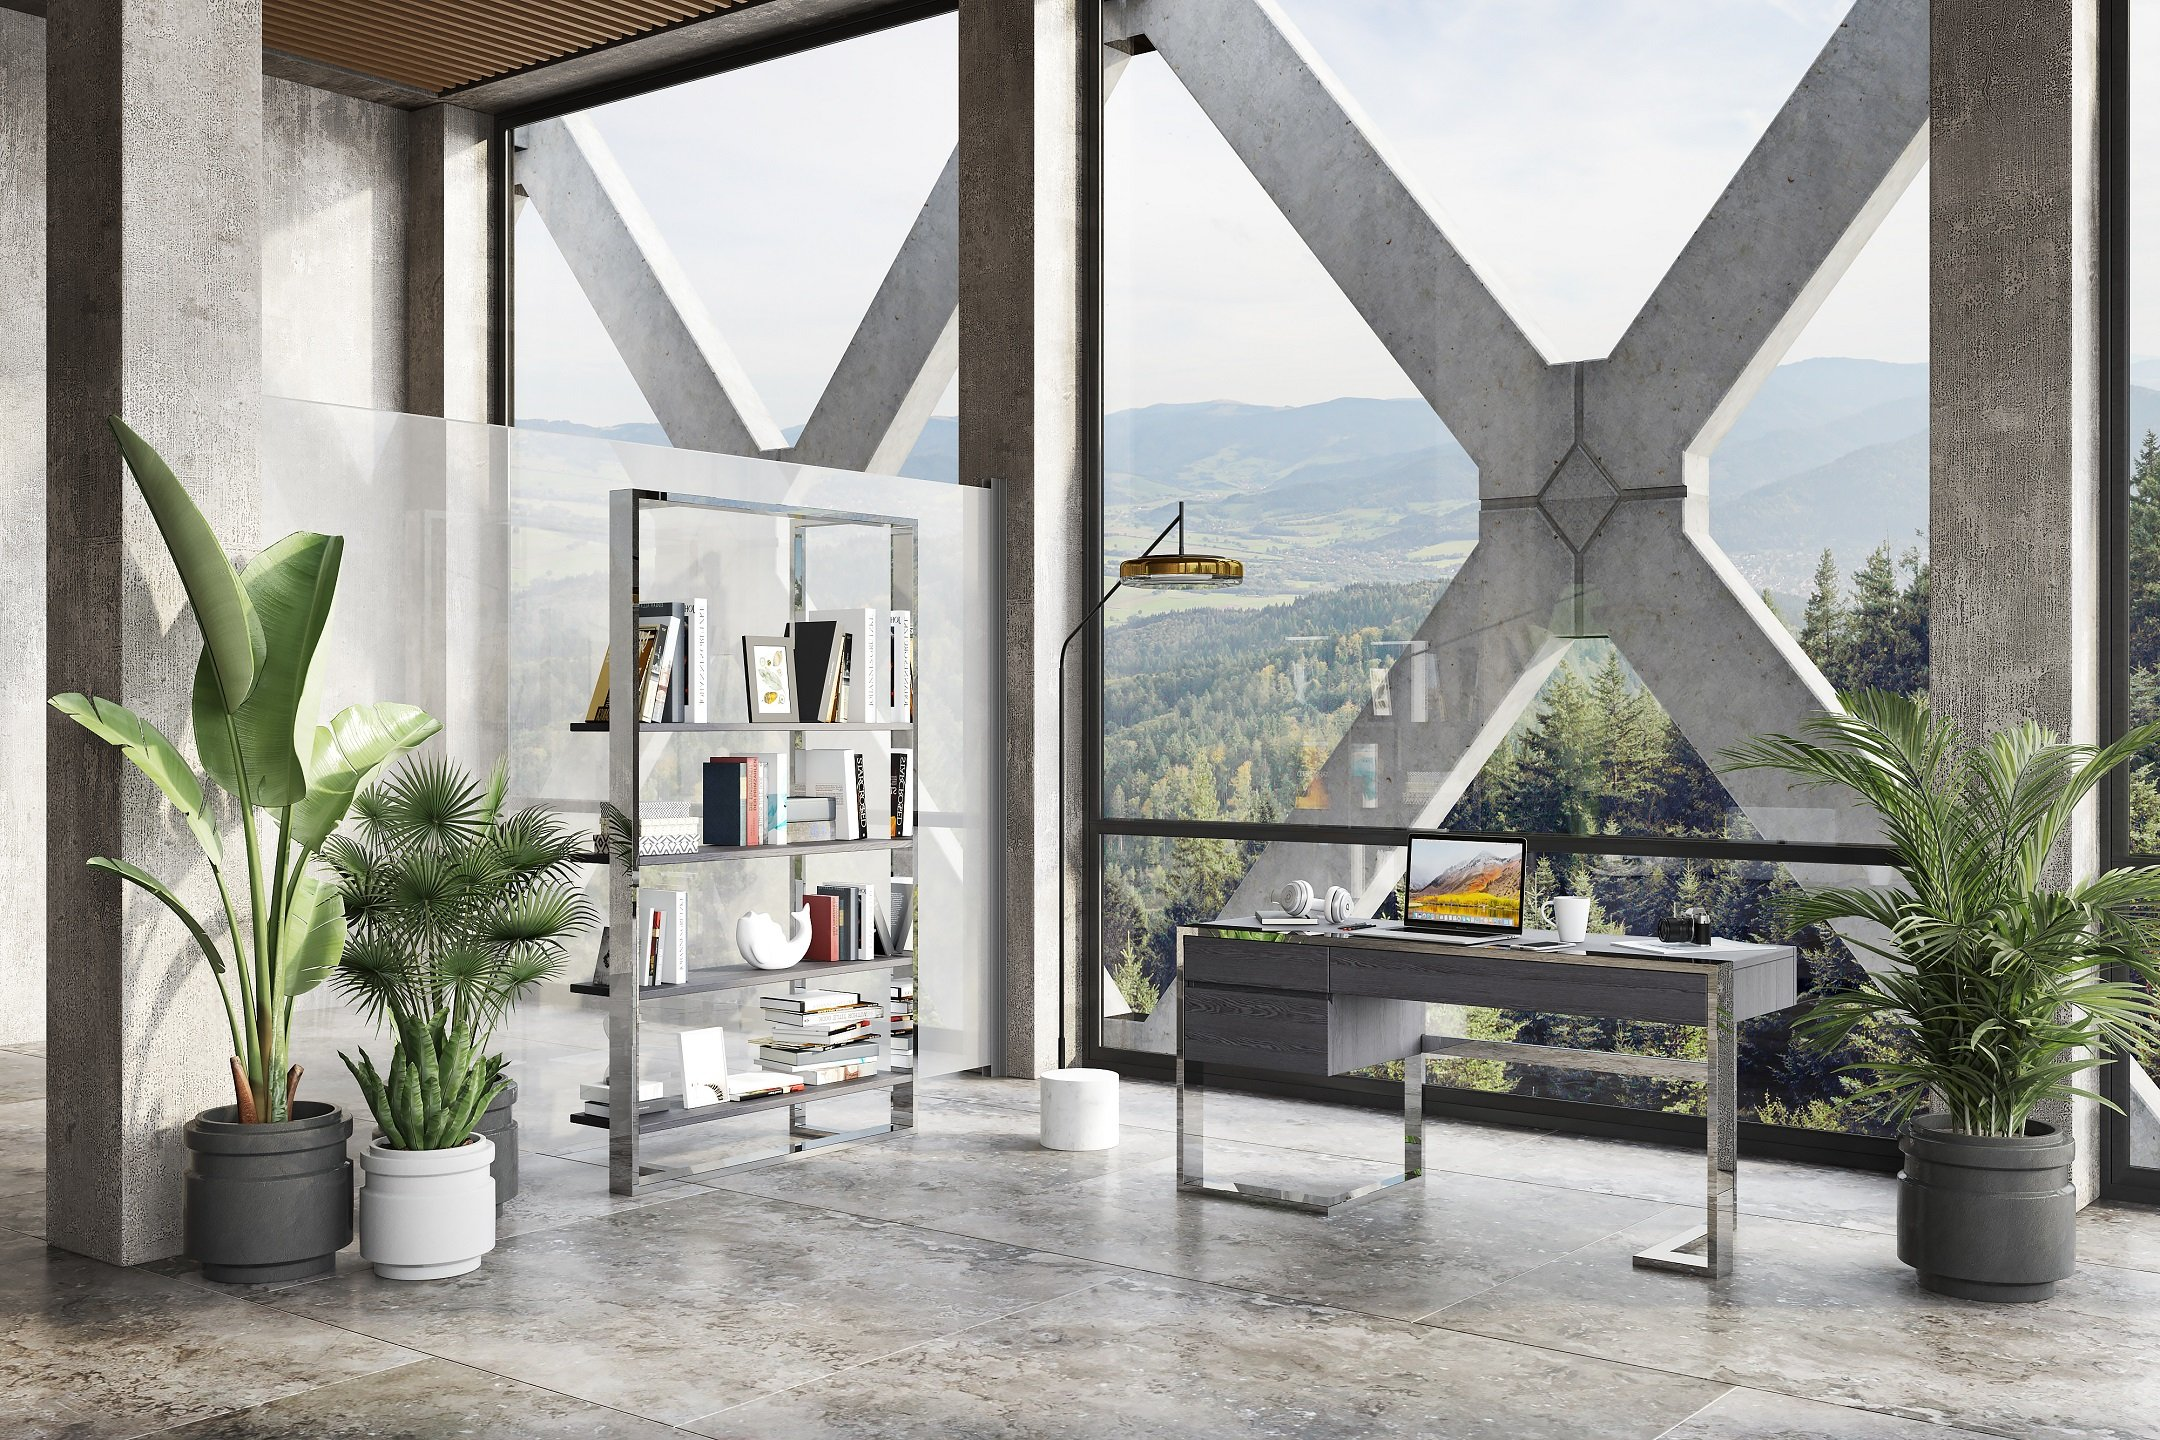 3D Visualization of a Stylish Home Office